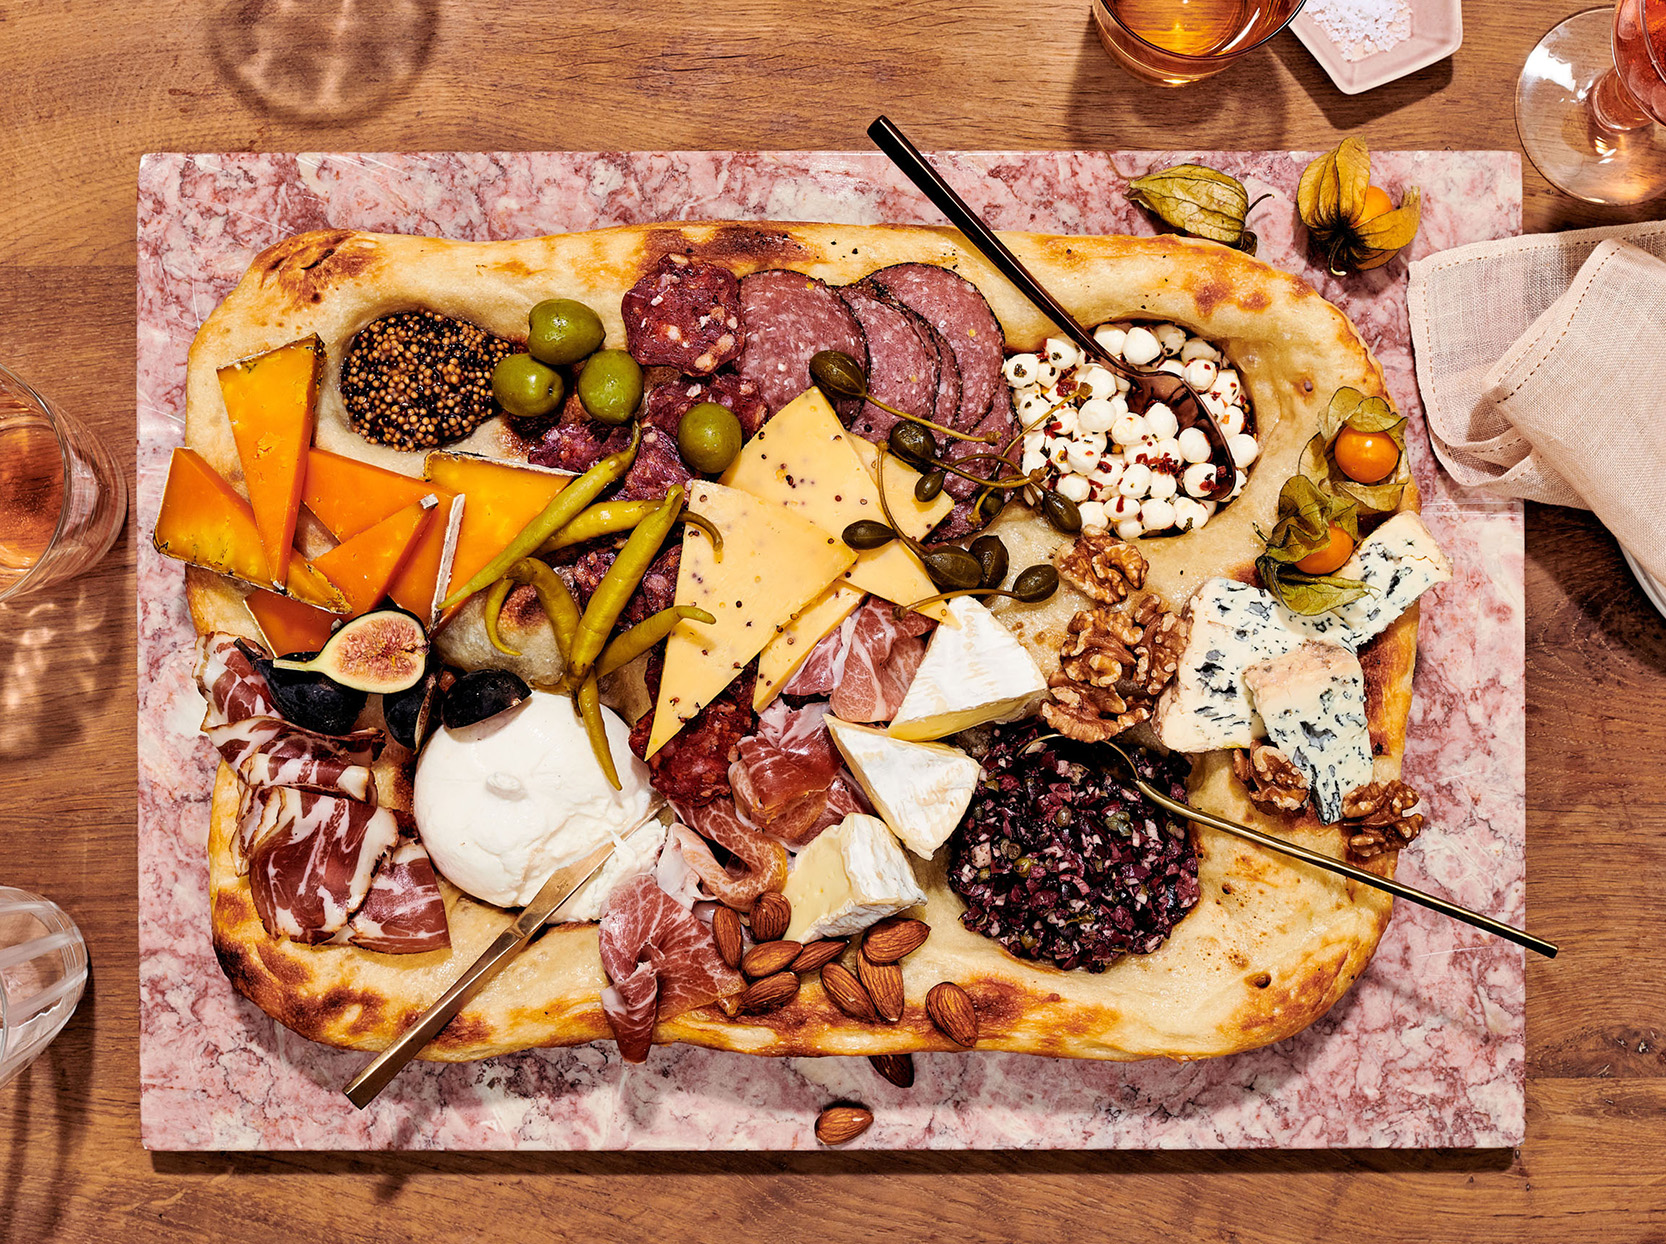 overhead view of incredible edible cheese board on table